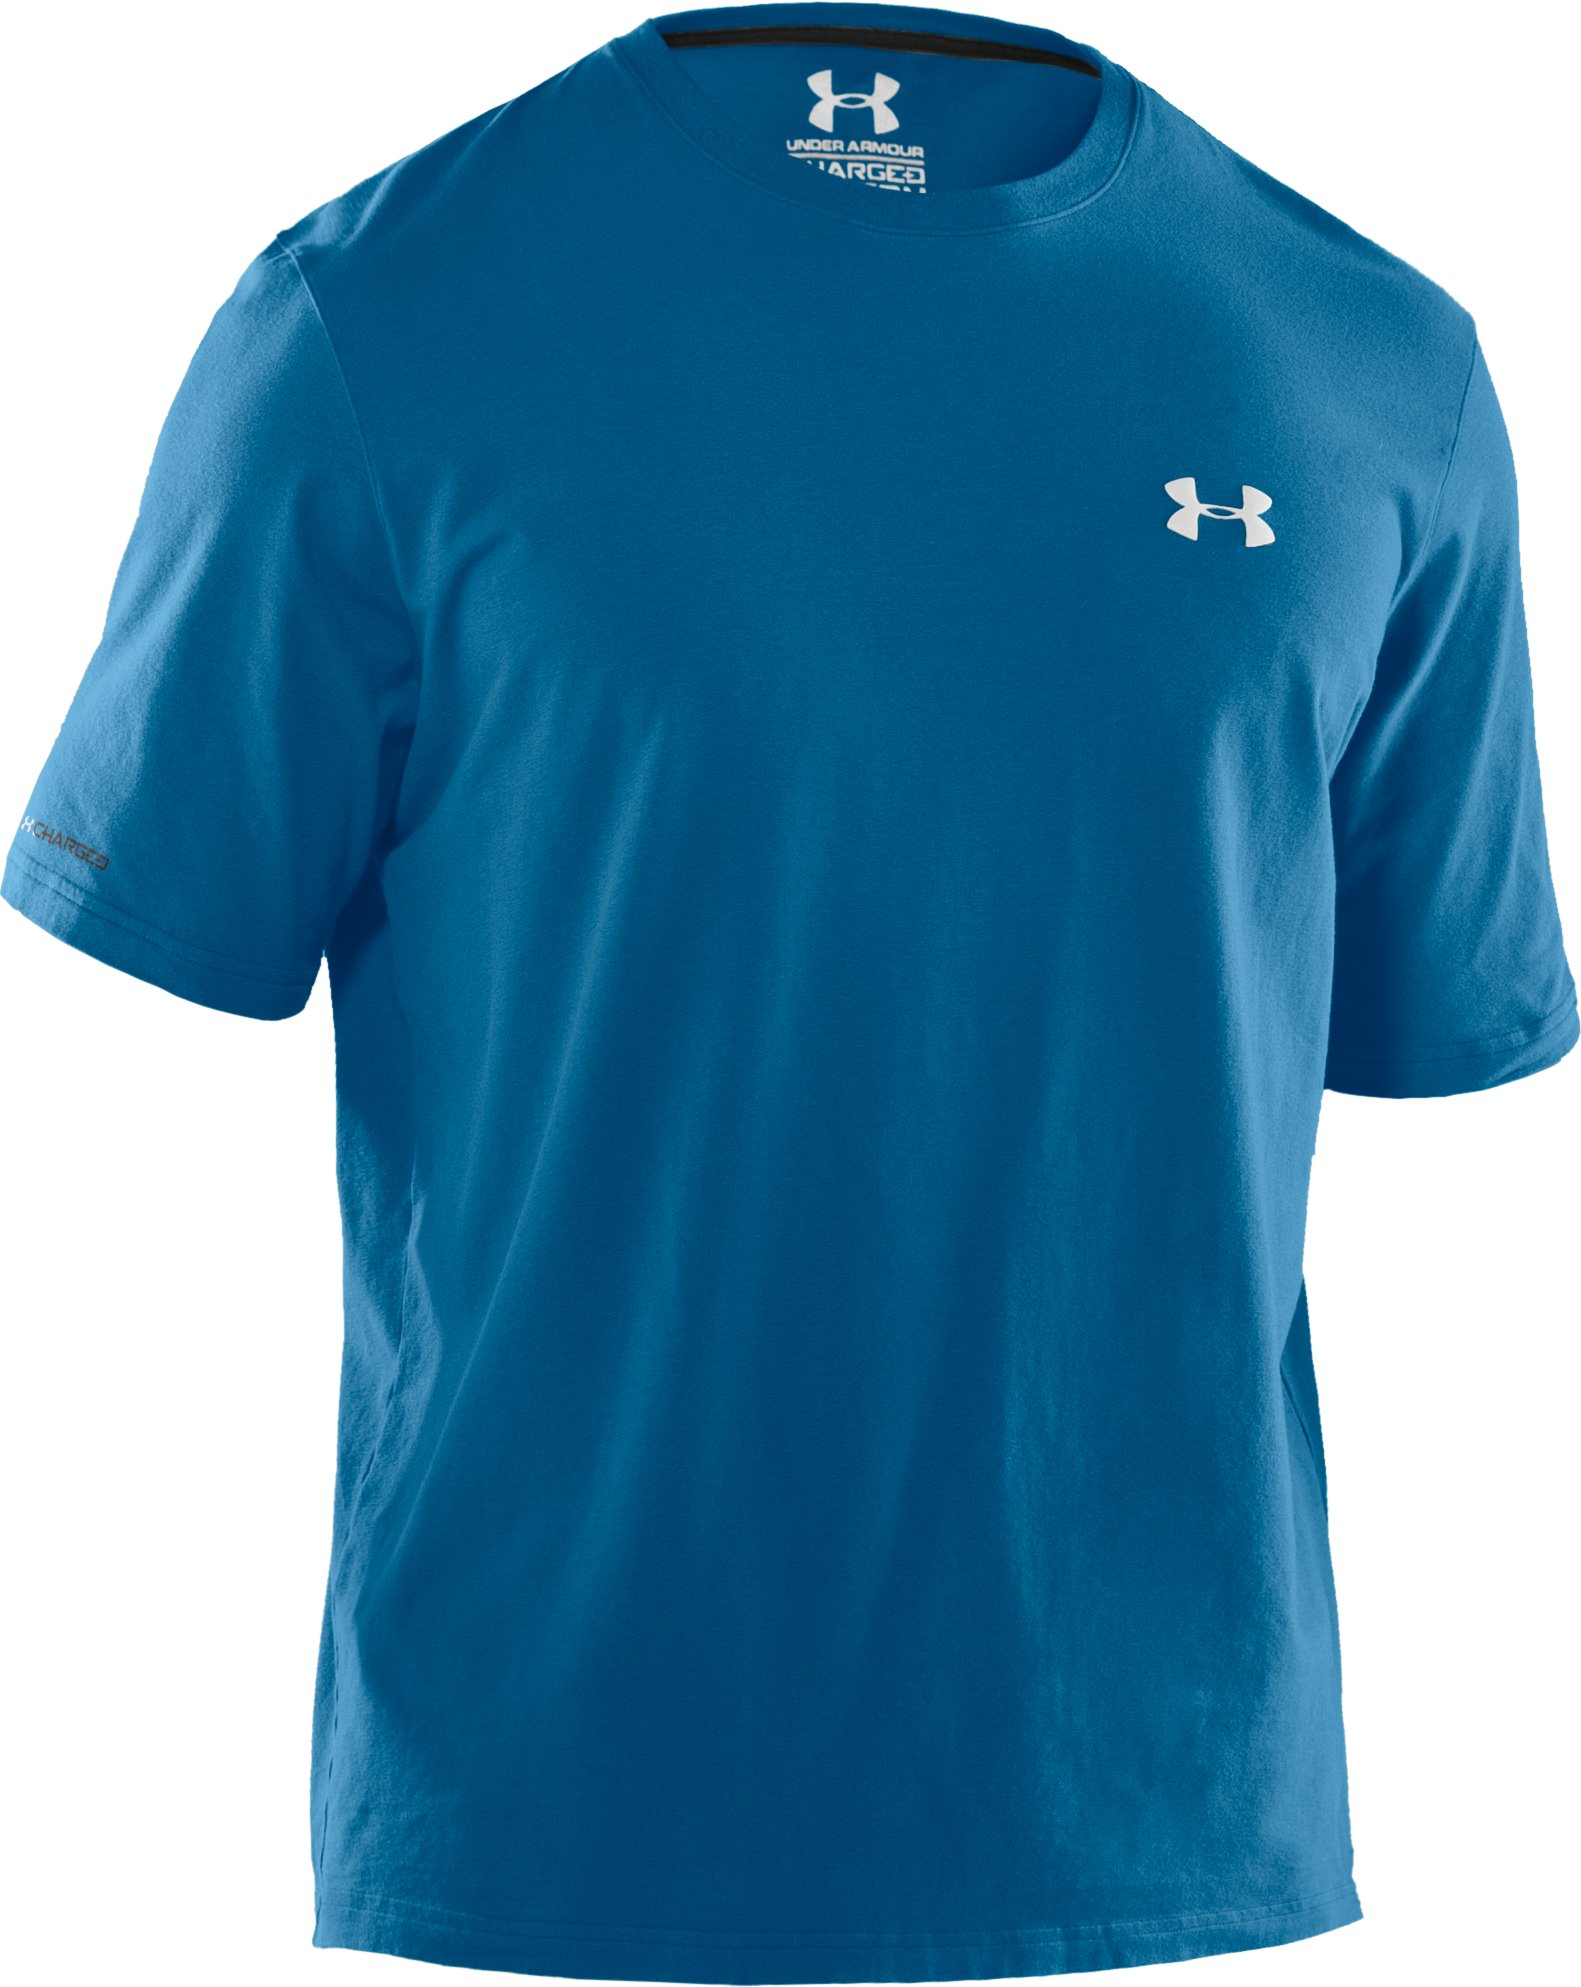 Men's Charged Cotton® T-Shirt, SNORKEL